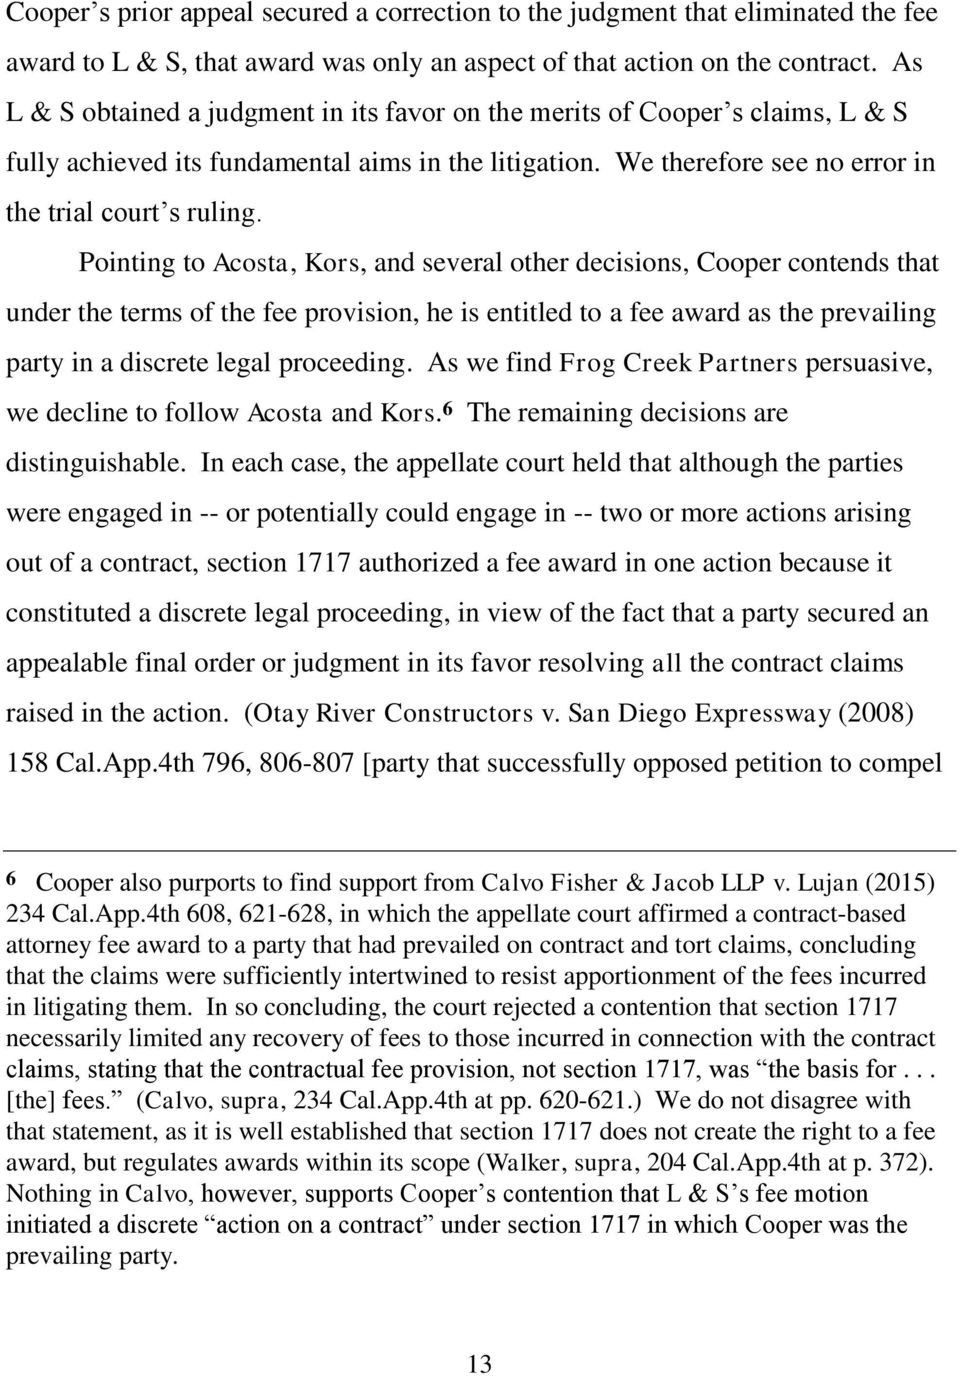 Pointing to Acosta, Kors, and several other decisions, Cooper contends that under the terms of the fee provision, he is entitled to a fee award as the prevailing party in a discrete legal proceeding.